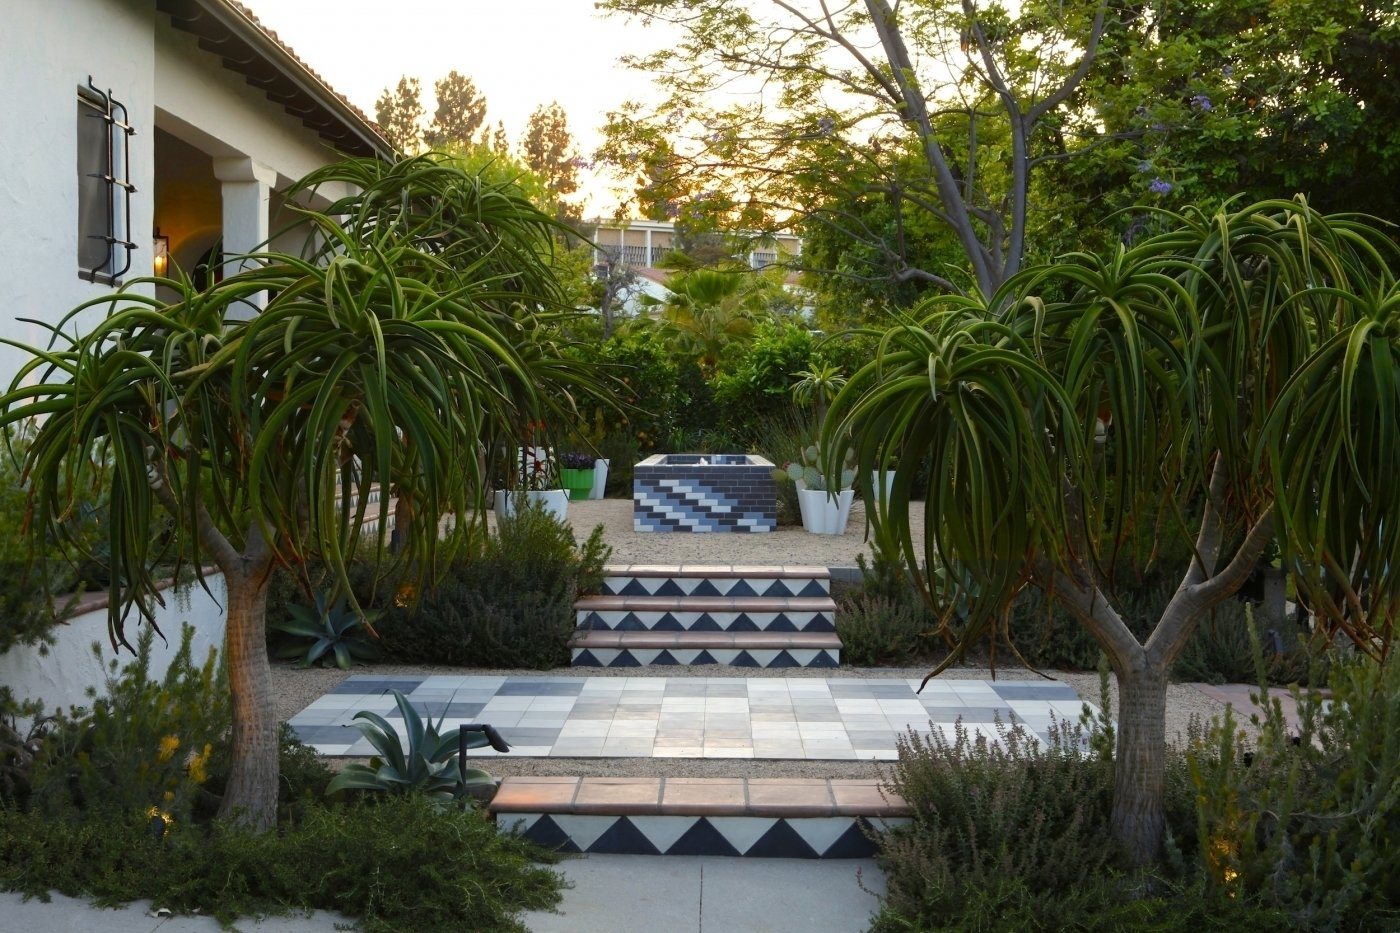 Photo 1 of 11 in 10 Modern Gardens That Freshen Up Traditional Homes